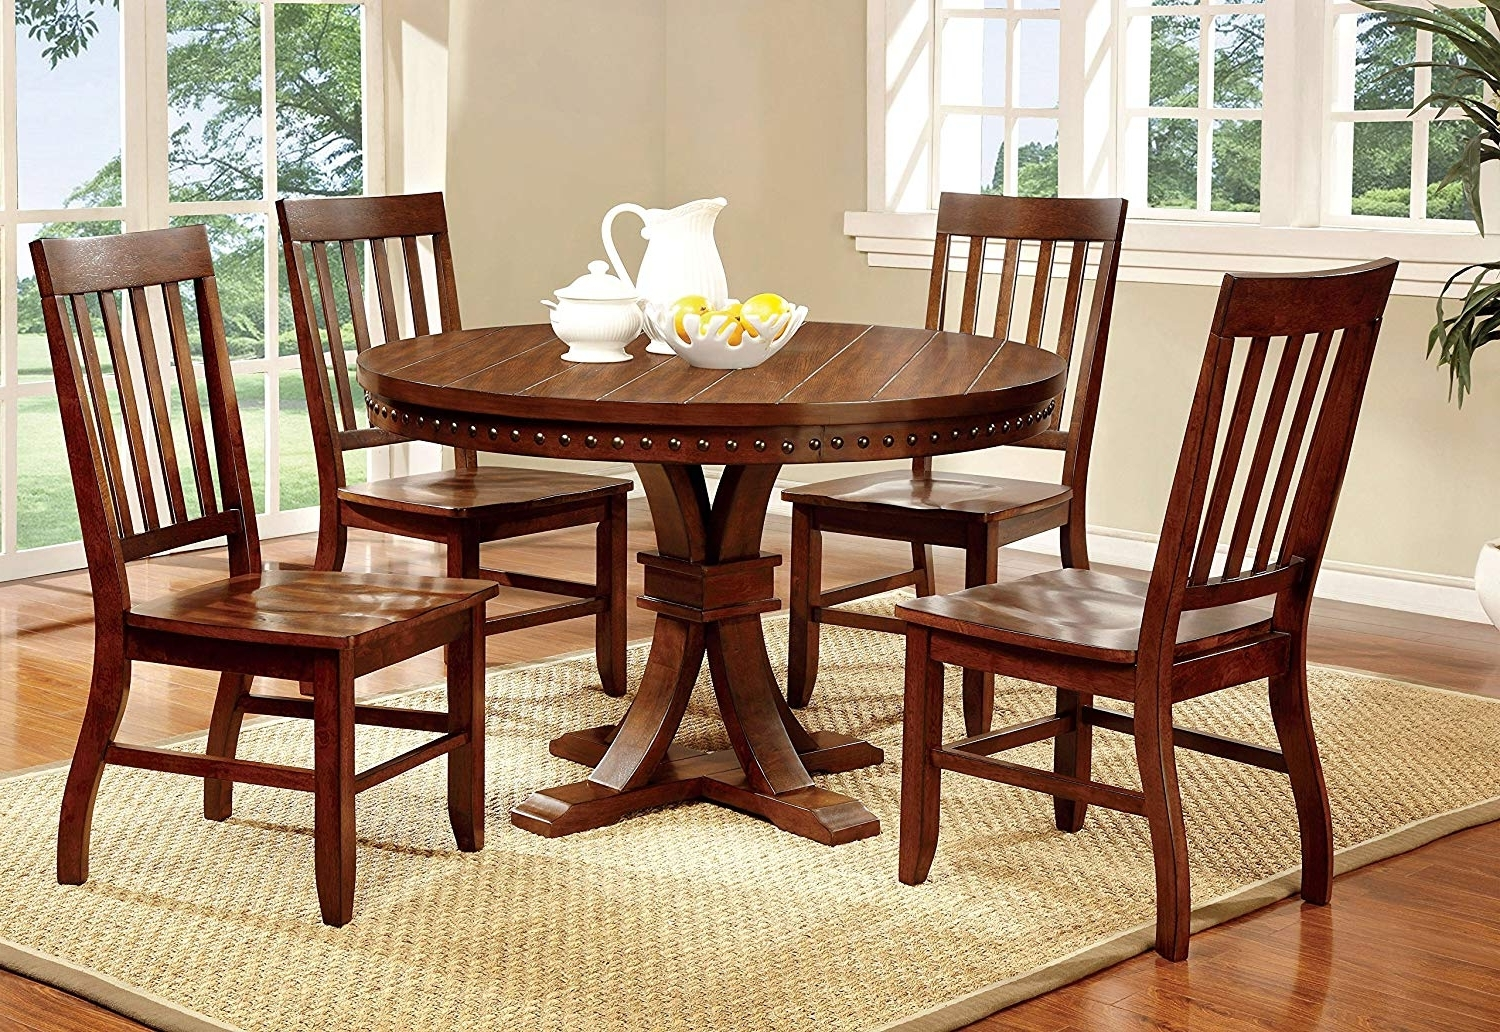 Latest Amazon – Furniture Of America Castile 5 Piece Transitional Round In Oak Dining Tables Sets (View 4 of 25)